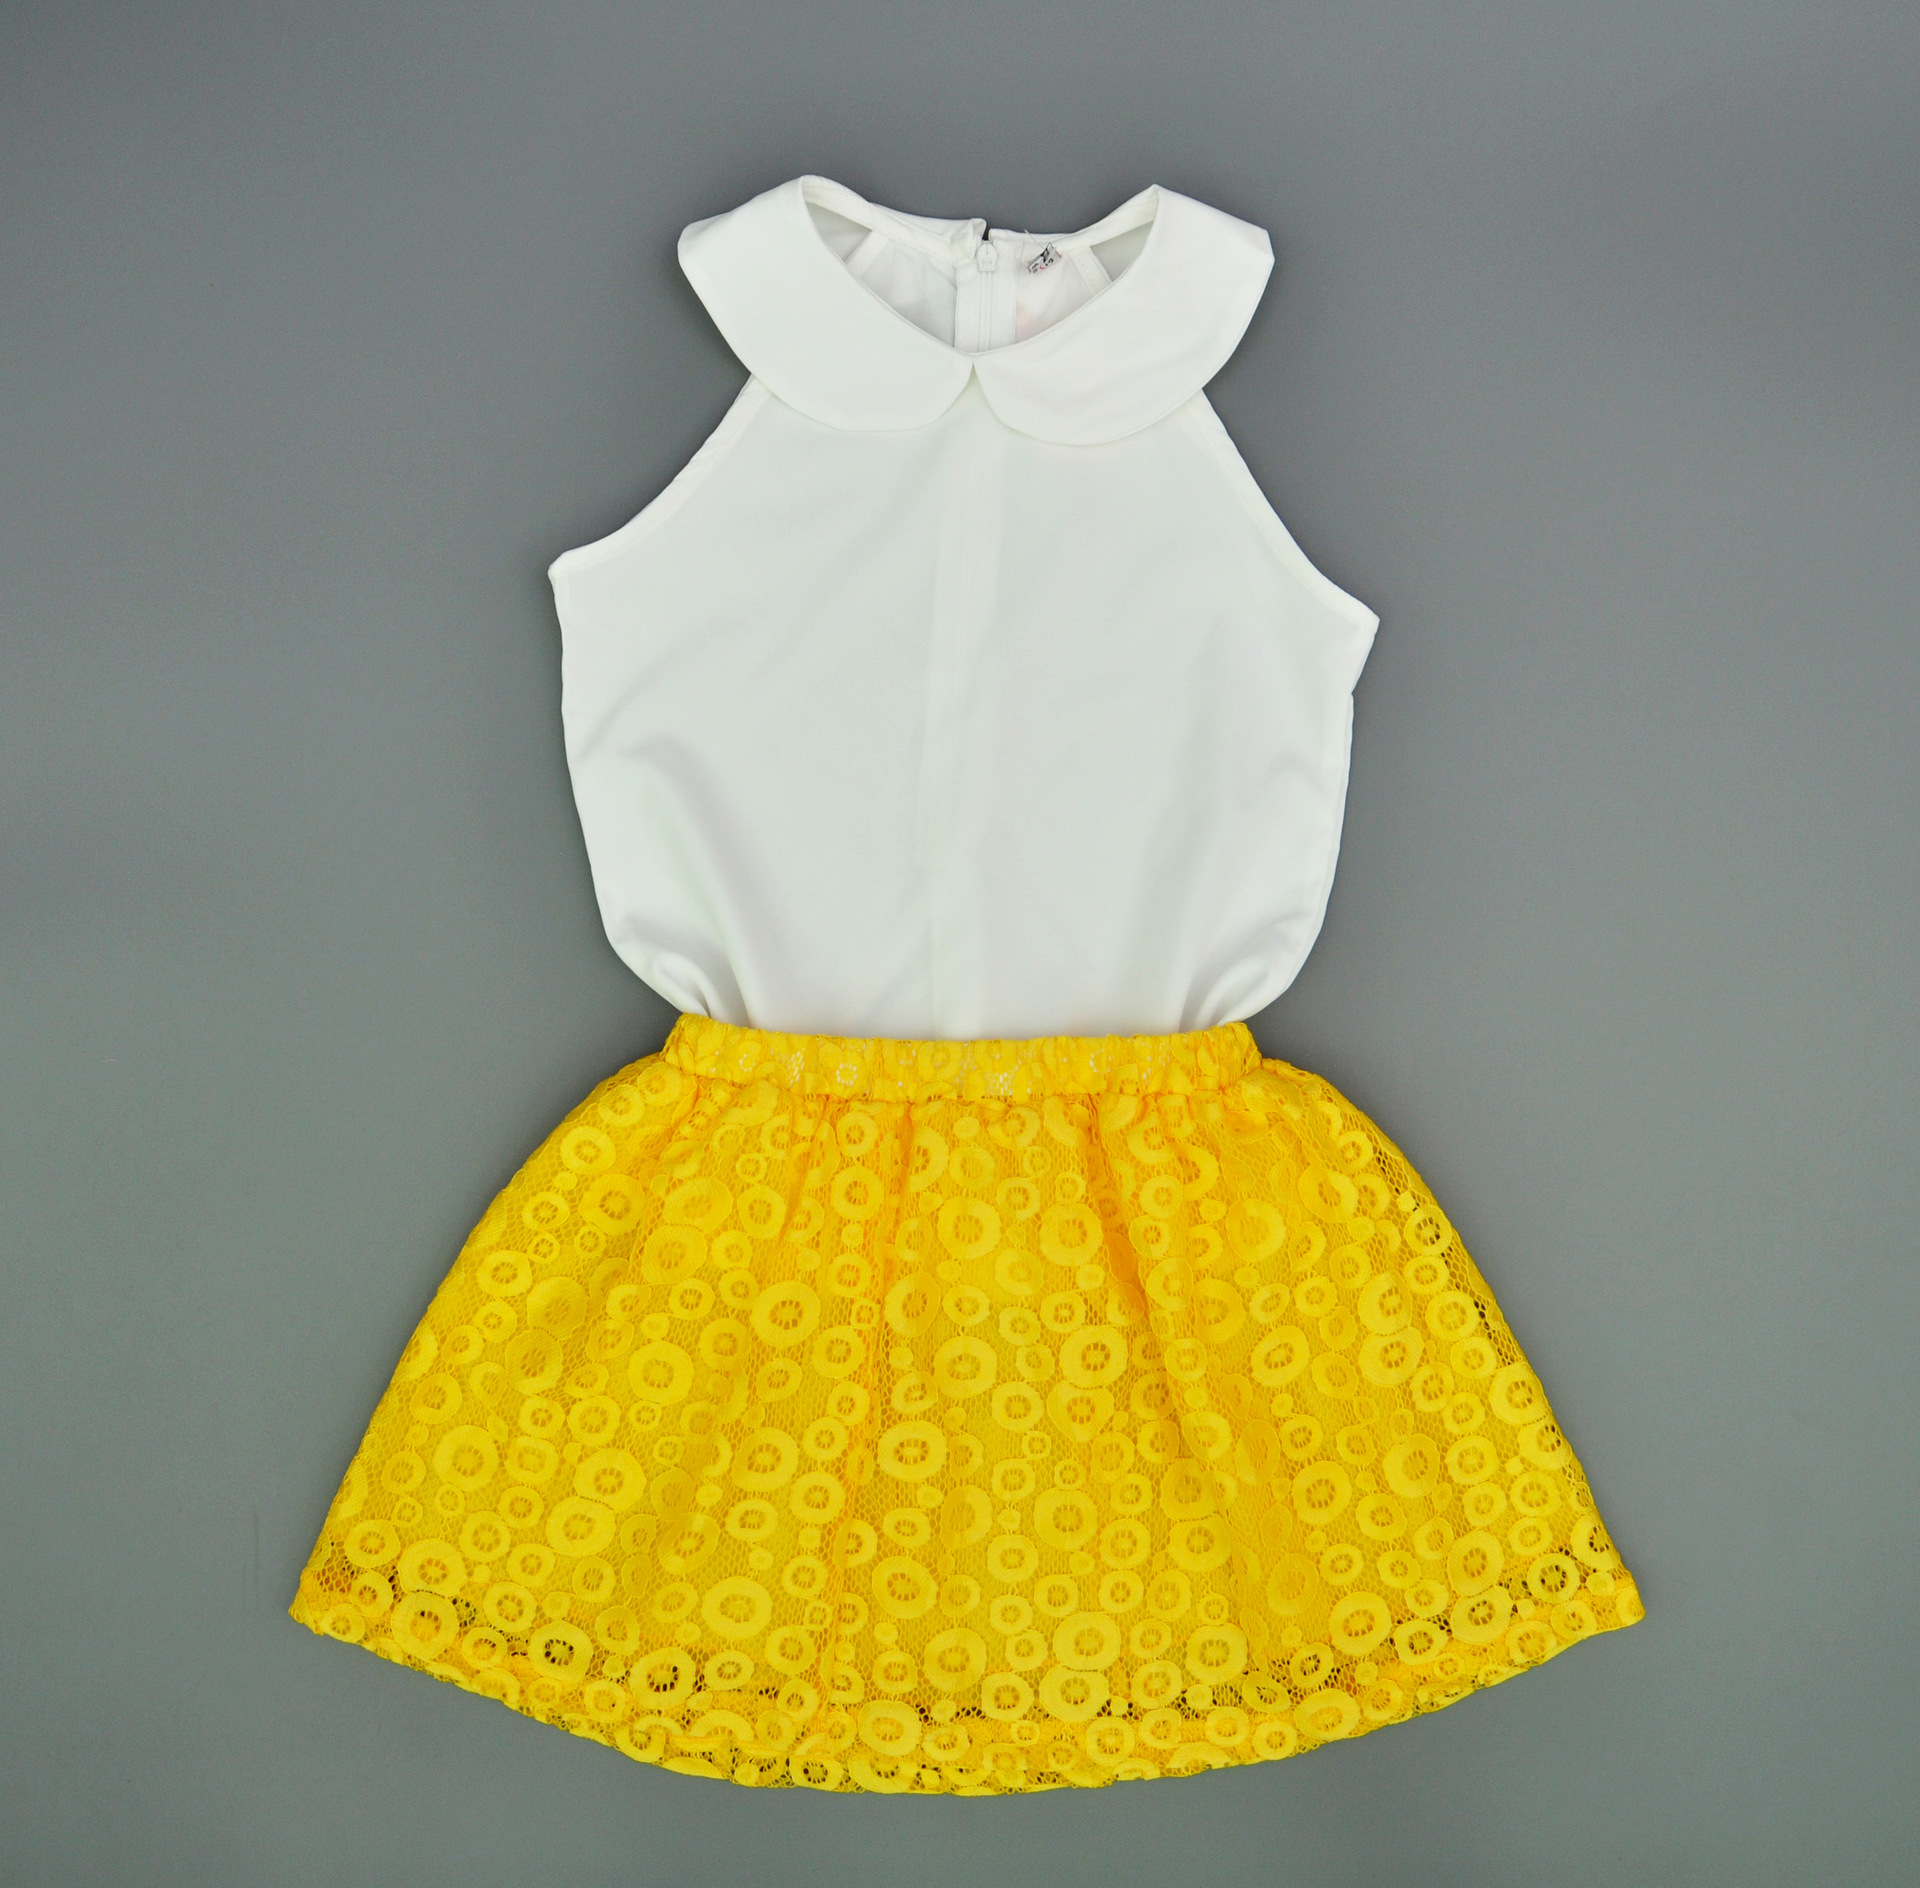 Kids Toddler Girls Clothing White Sleeveless Summer Tops Yellow Baby Girl Lace Flowers Dress Skirts Clothes Outfit Suit Set summer casual denim newborn toddler baby girl clothing kids off shoulder crop tops shorts outfit clothes set